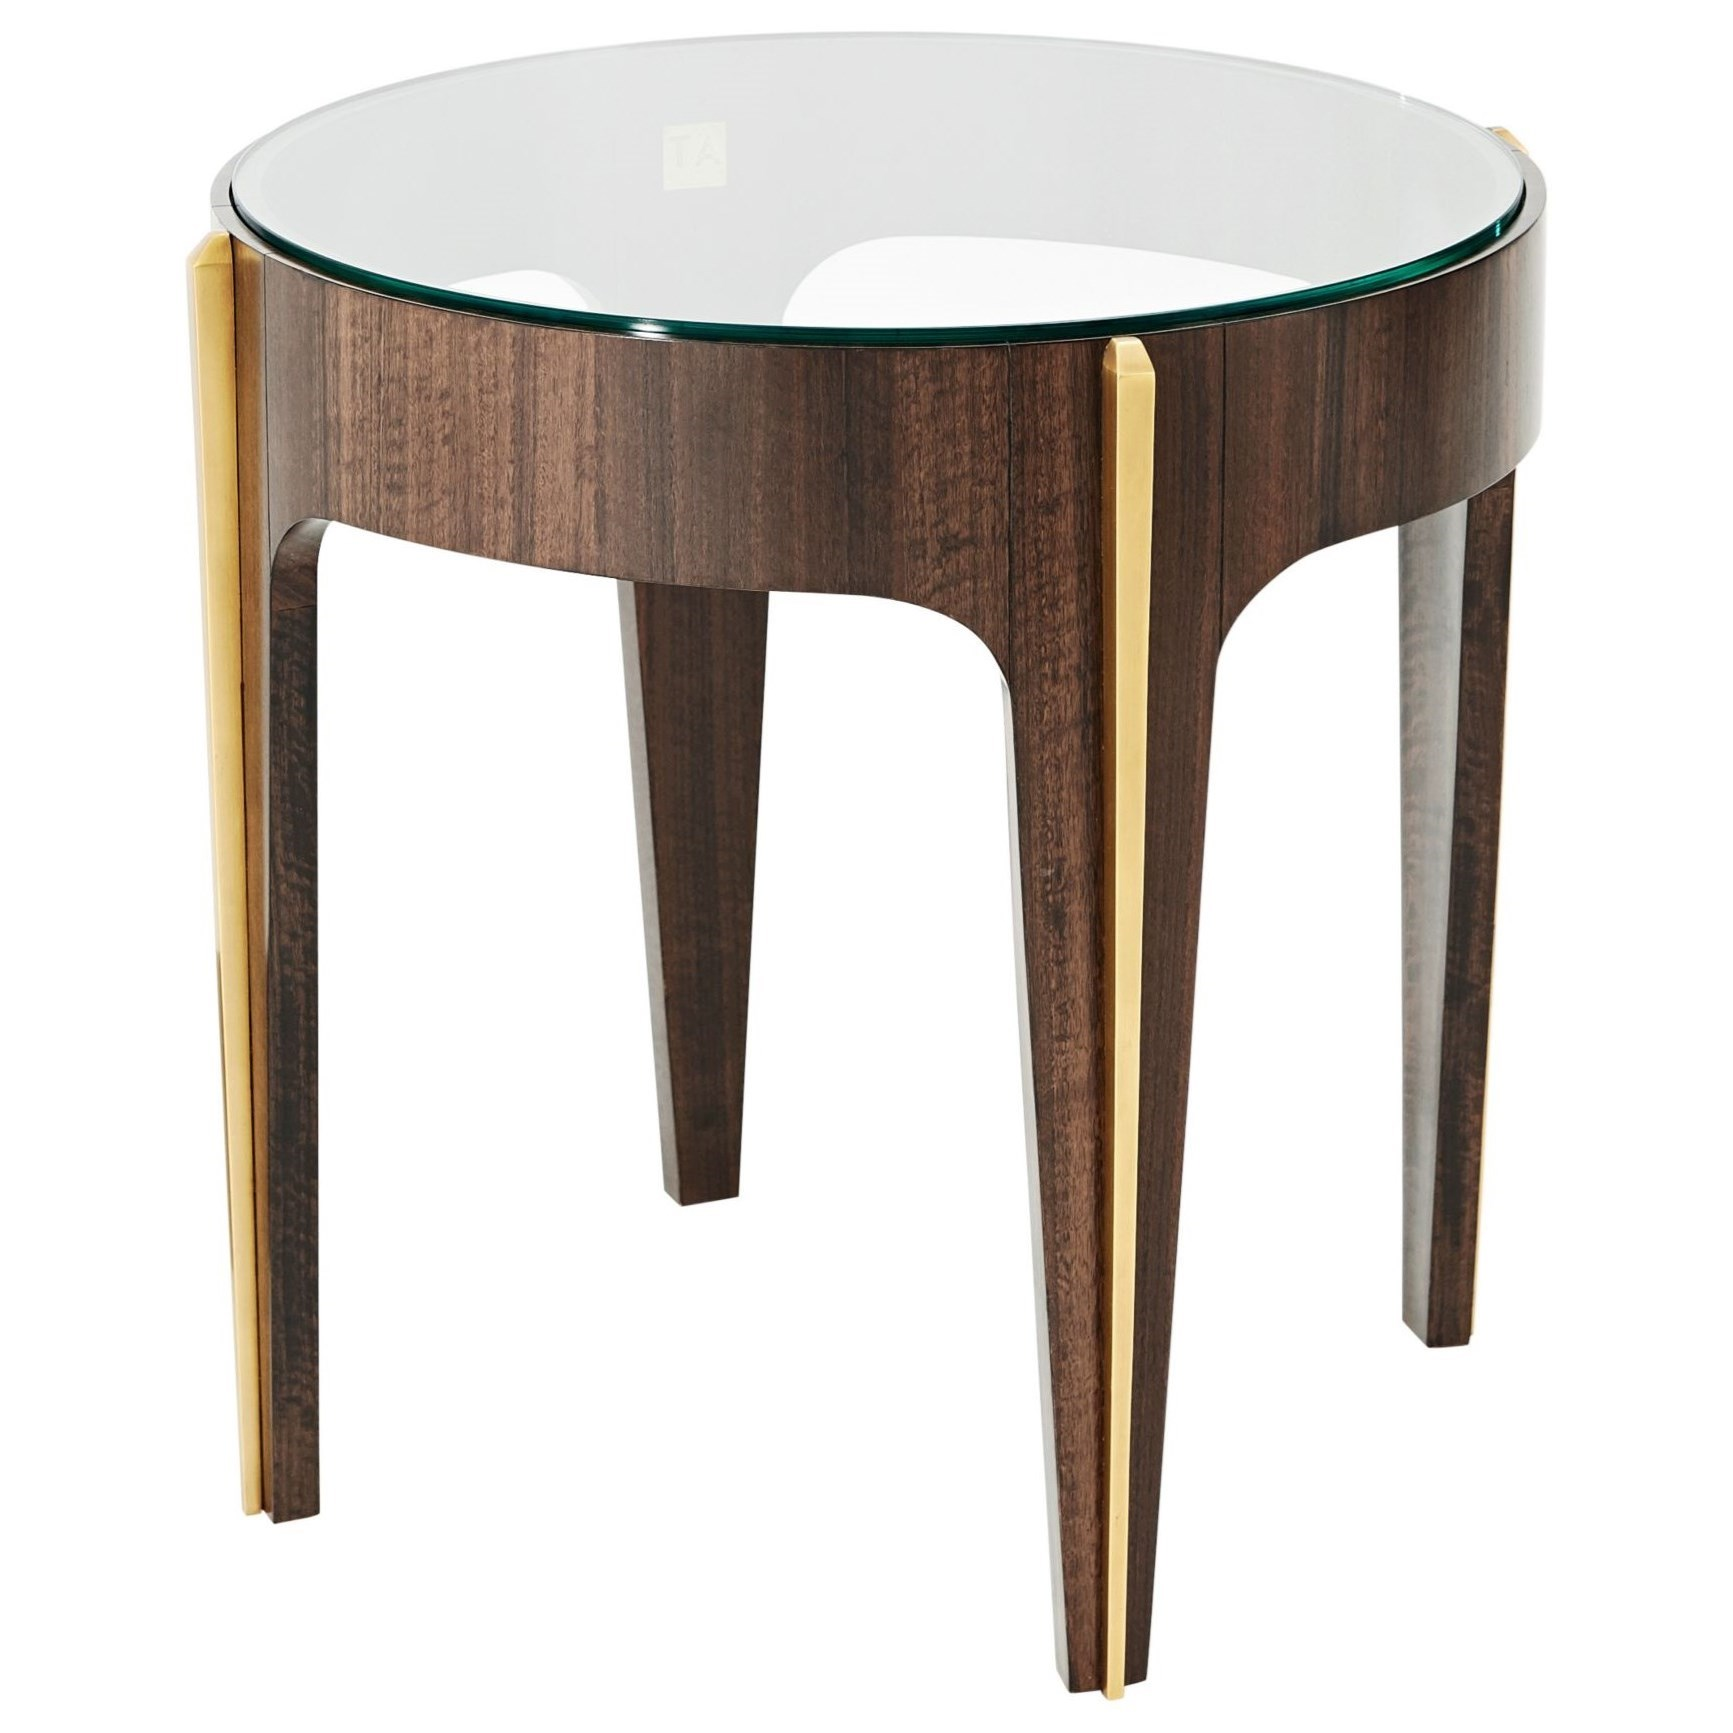 Vanucci Eclectics Bold Lamp Table by Theodore Alexander at Baer's Furniture